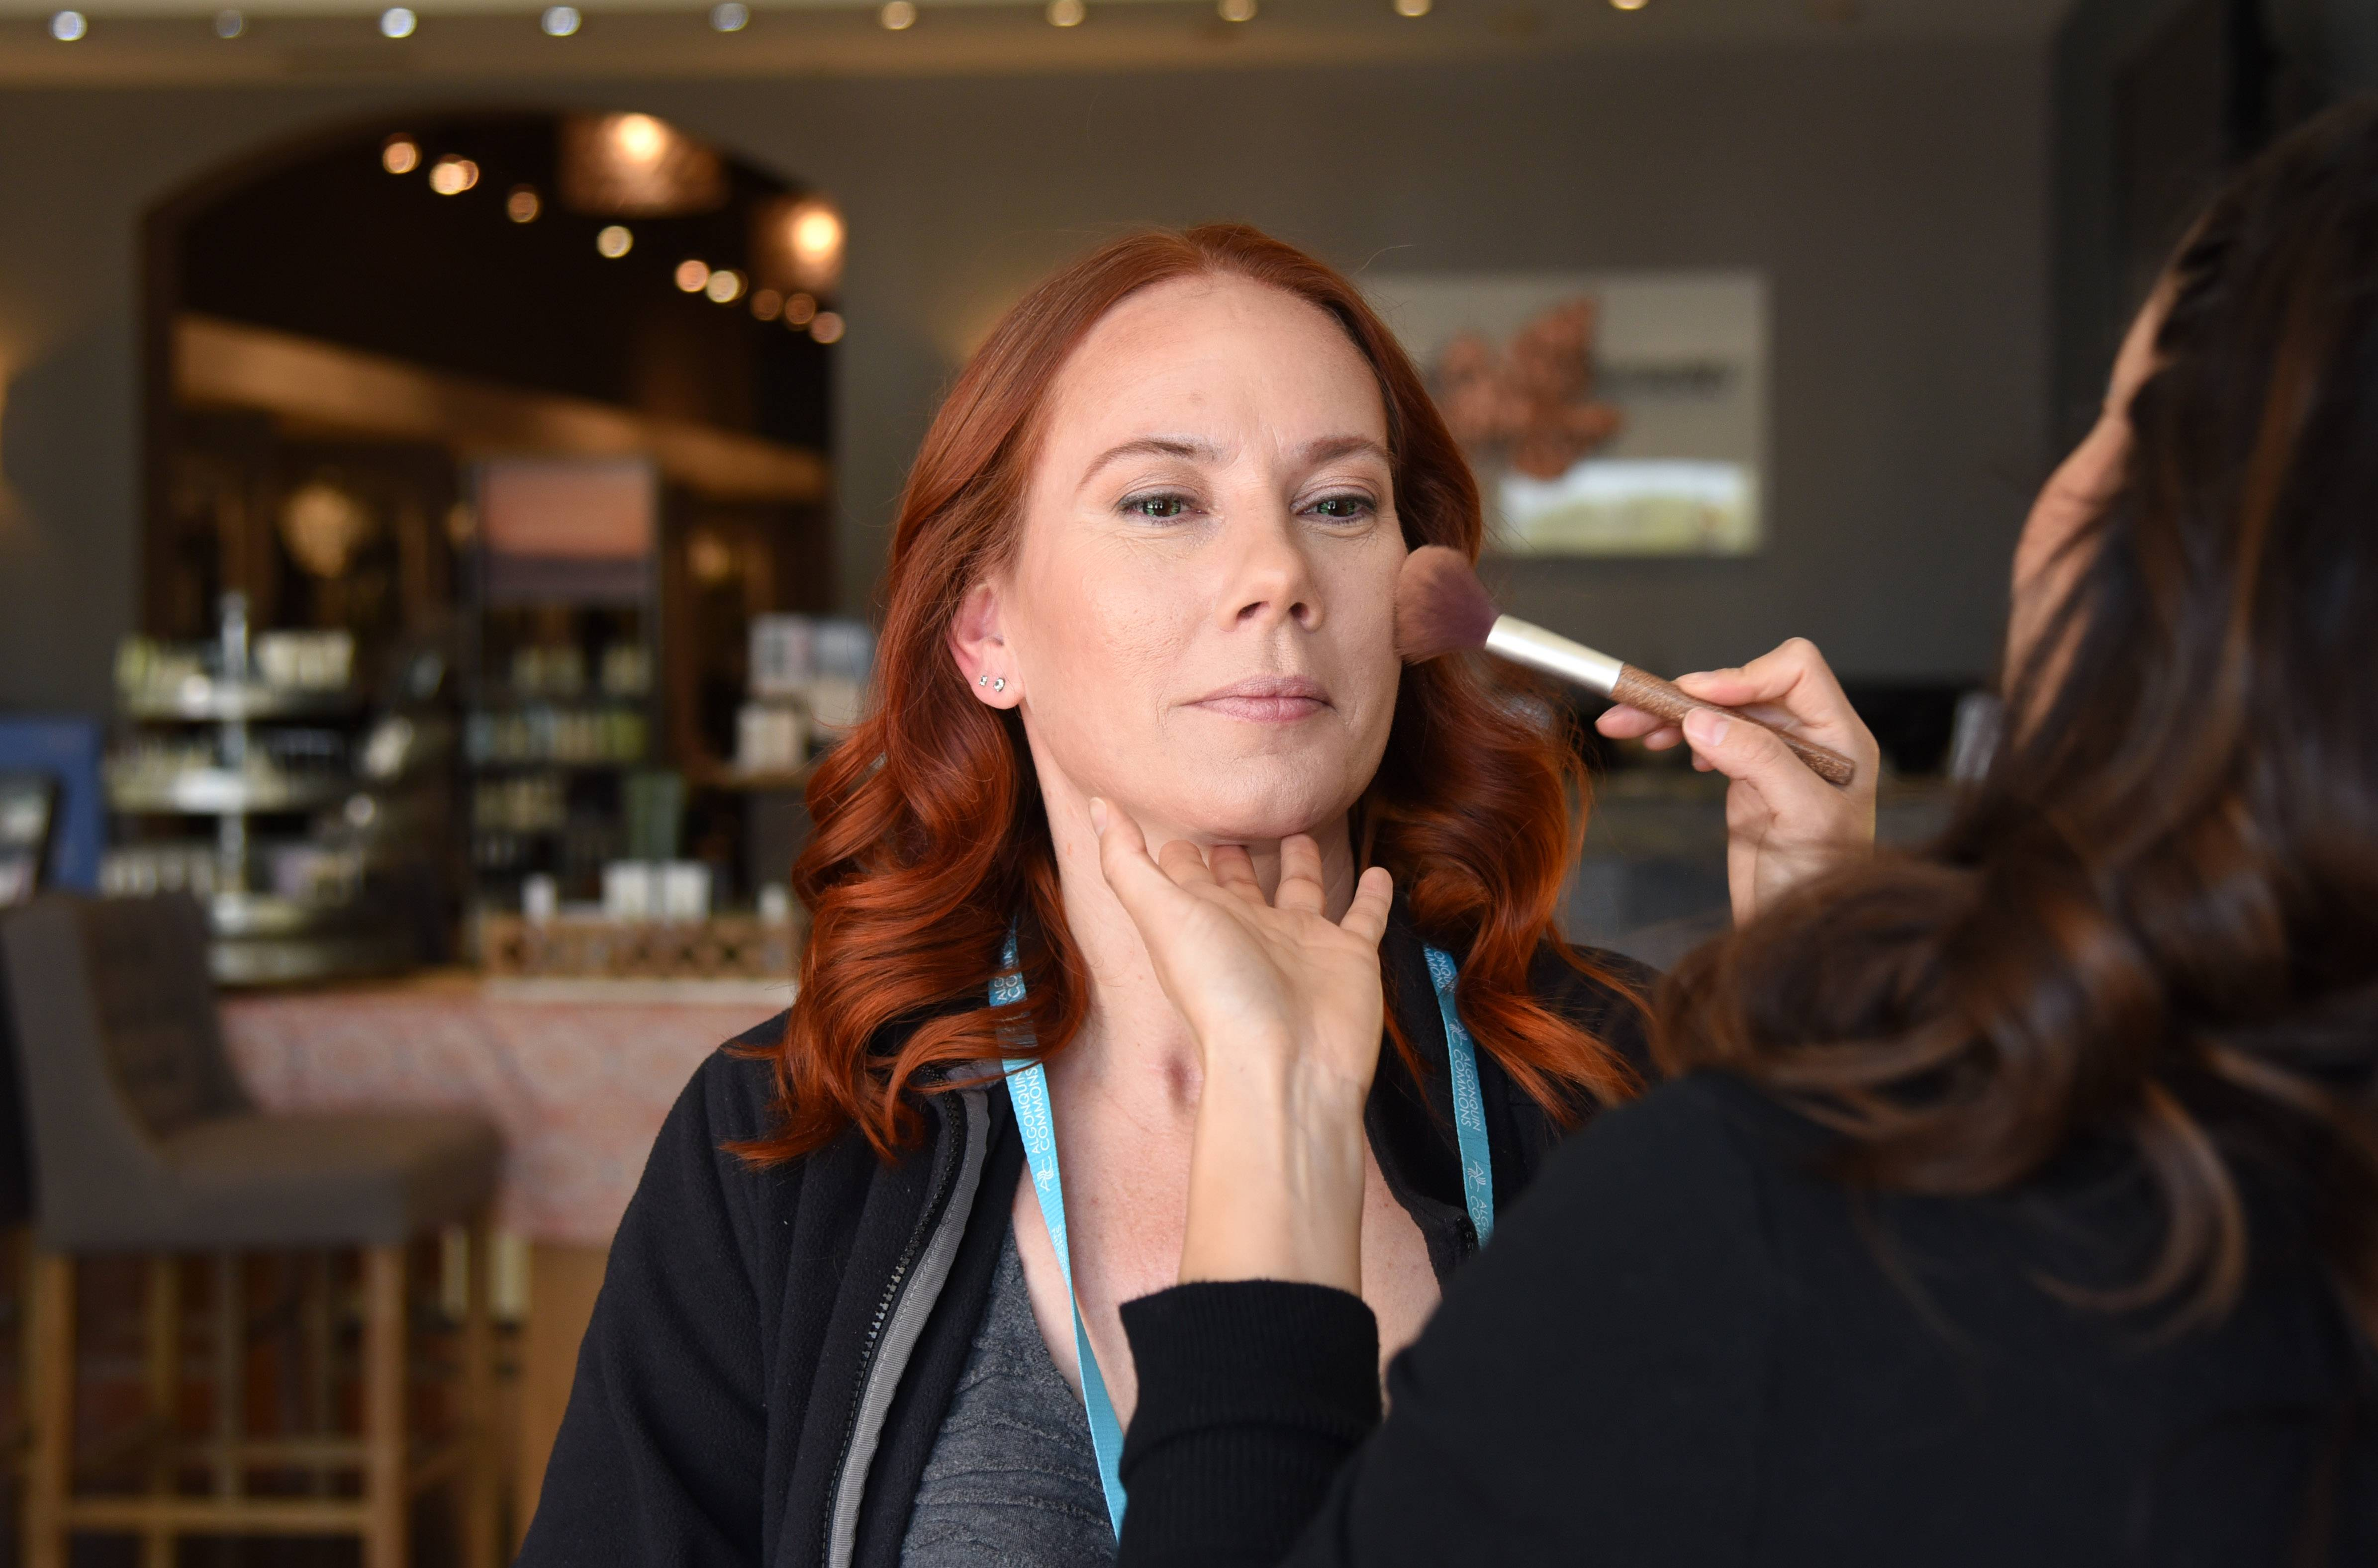 Kelly Galvan of Crystal Lake gets her makeup done by Jeanette Garcia at Taylor Stevens Salon in Algonquin Commons. Galvan was one of four winners of the Algonquin Commons March Makeover Madness contest. Winners had their hair and makeup done and also received $500 in mall gift cards.